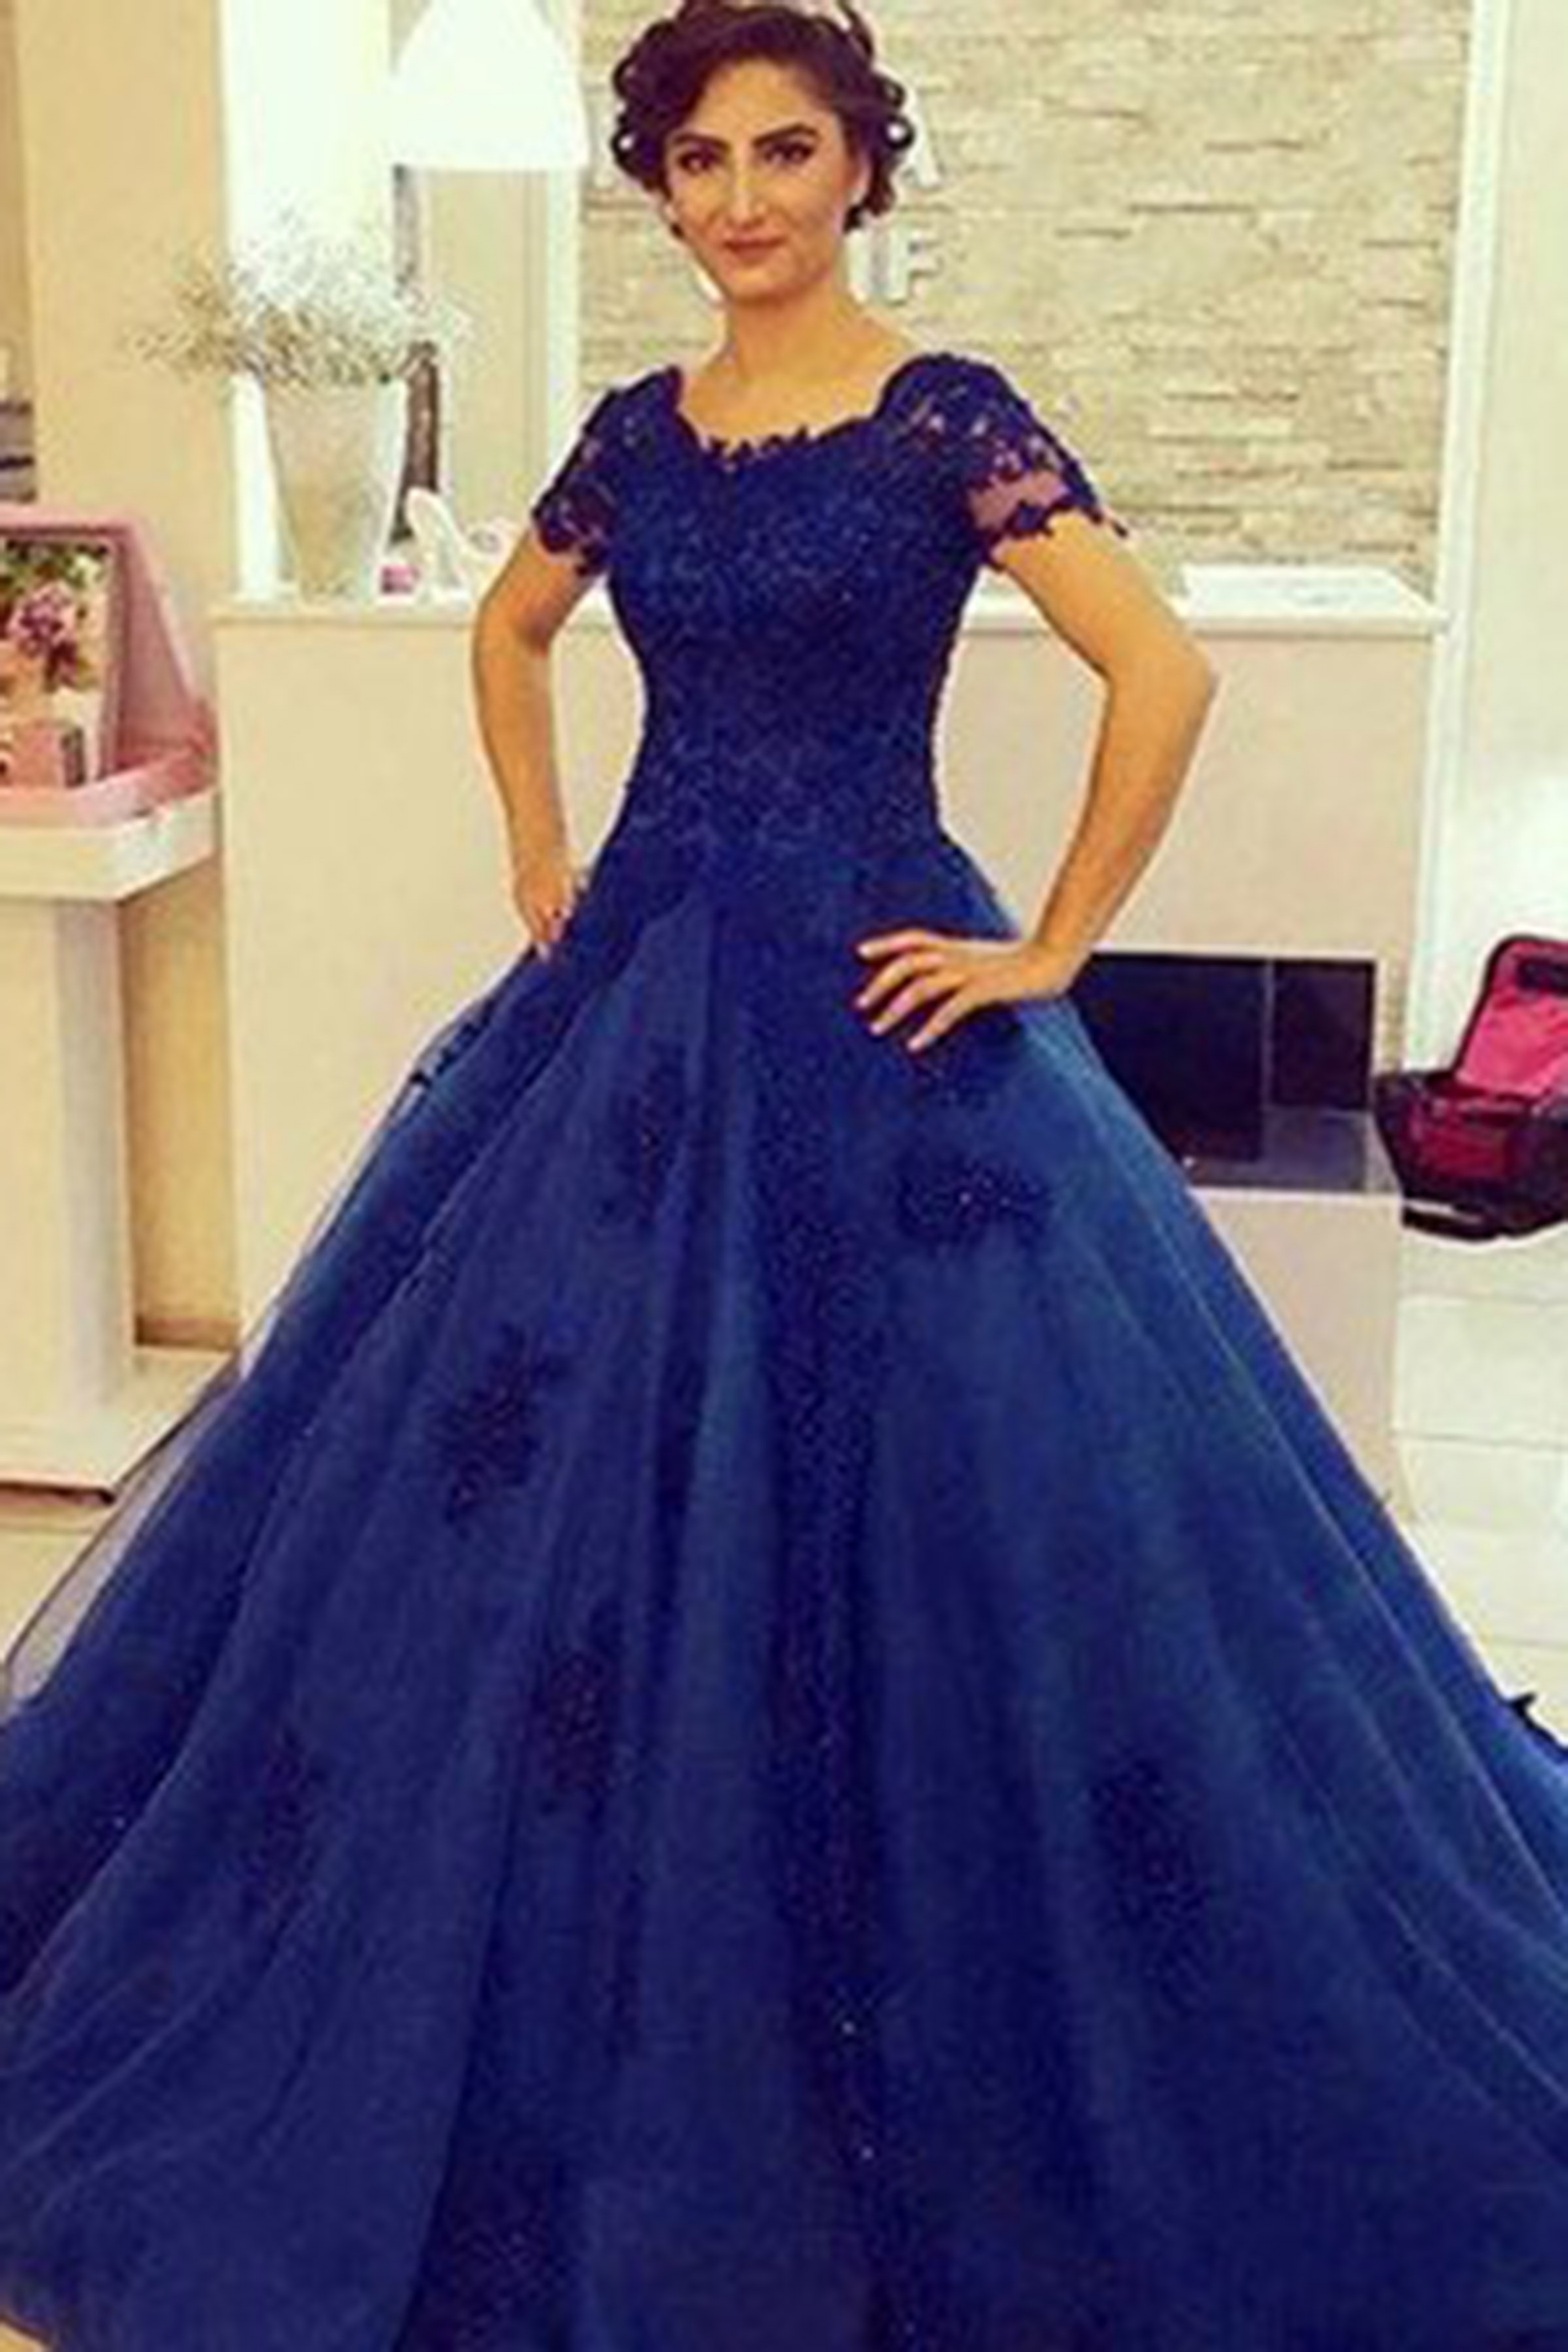 63794bcc126 Royal blue organza lace short sleeves A-line ball gown dresses